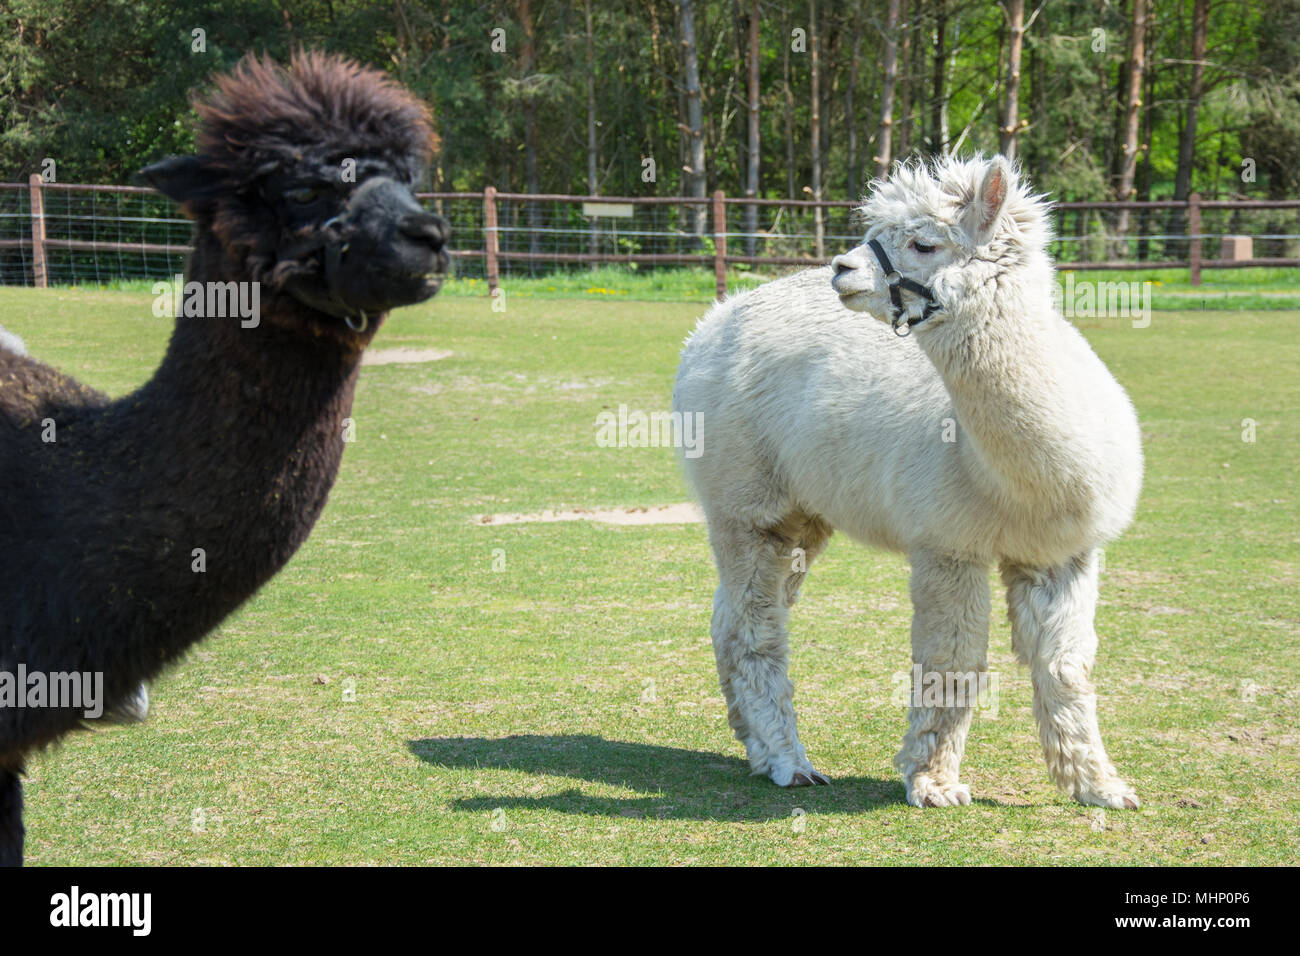 Two alpacas standing on a green pasture - white alpaca and head of brown one Stock Photo